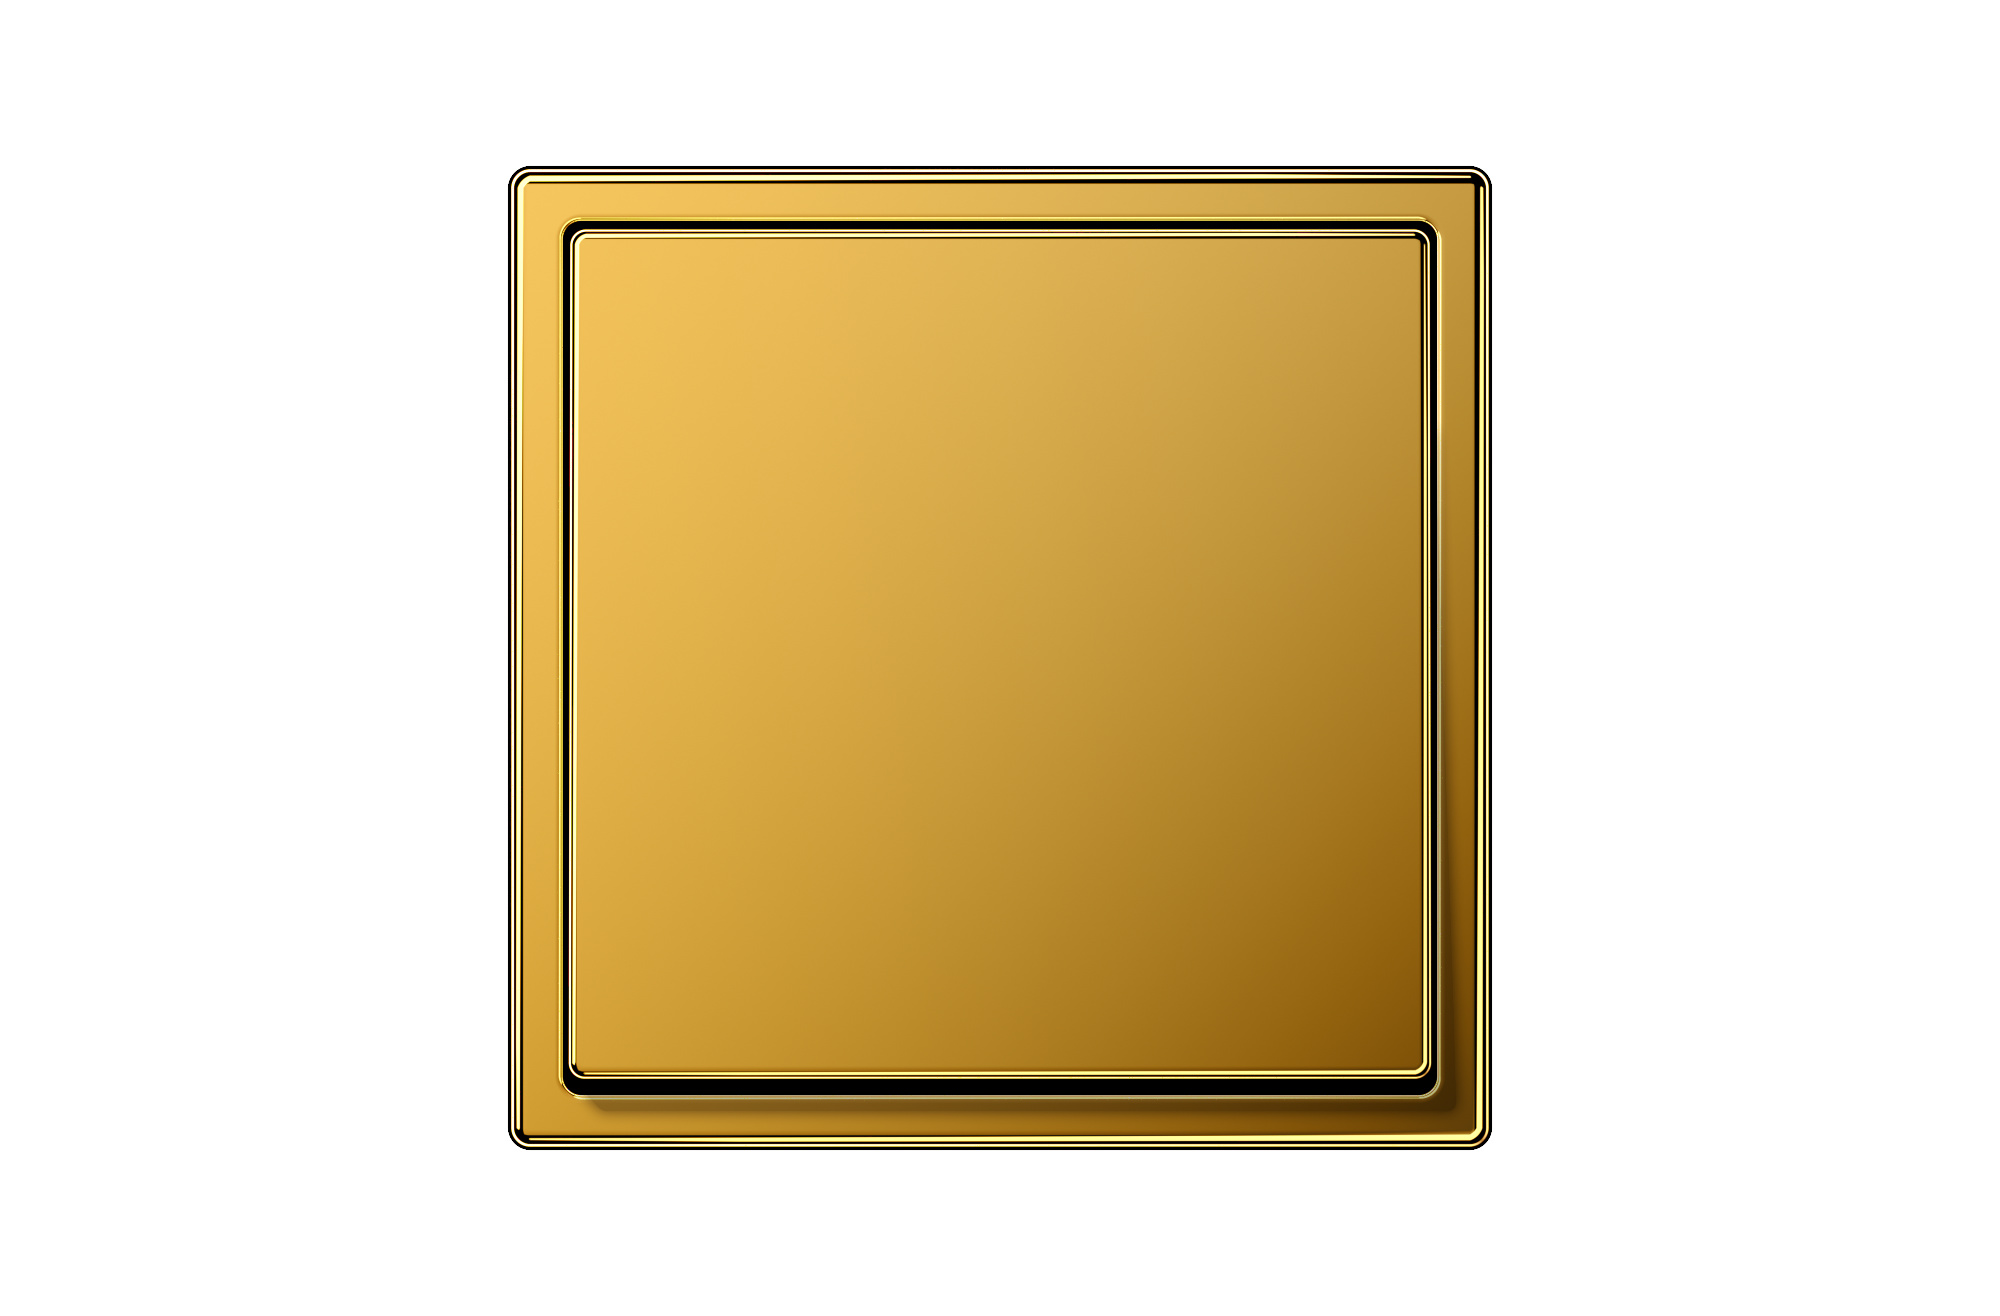 Ls 990 Switch In Gold By Jung Archello